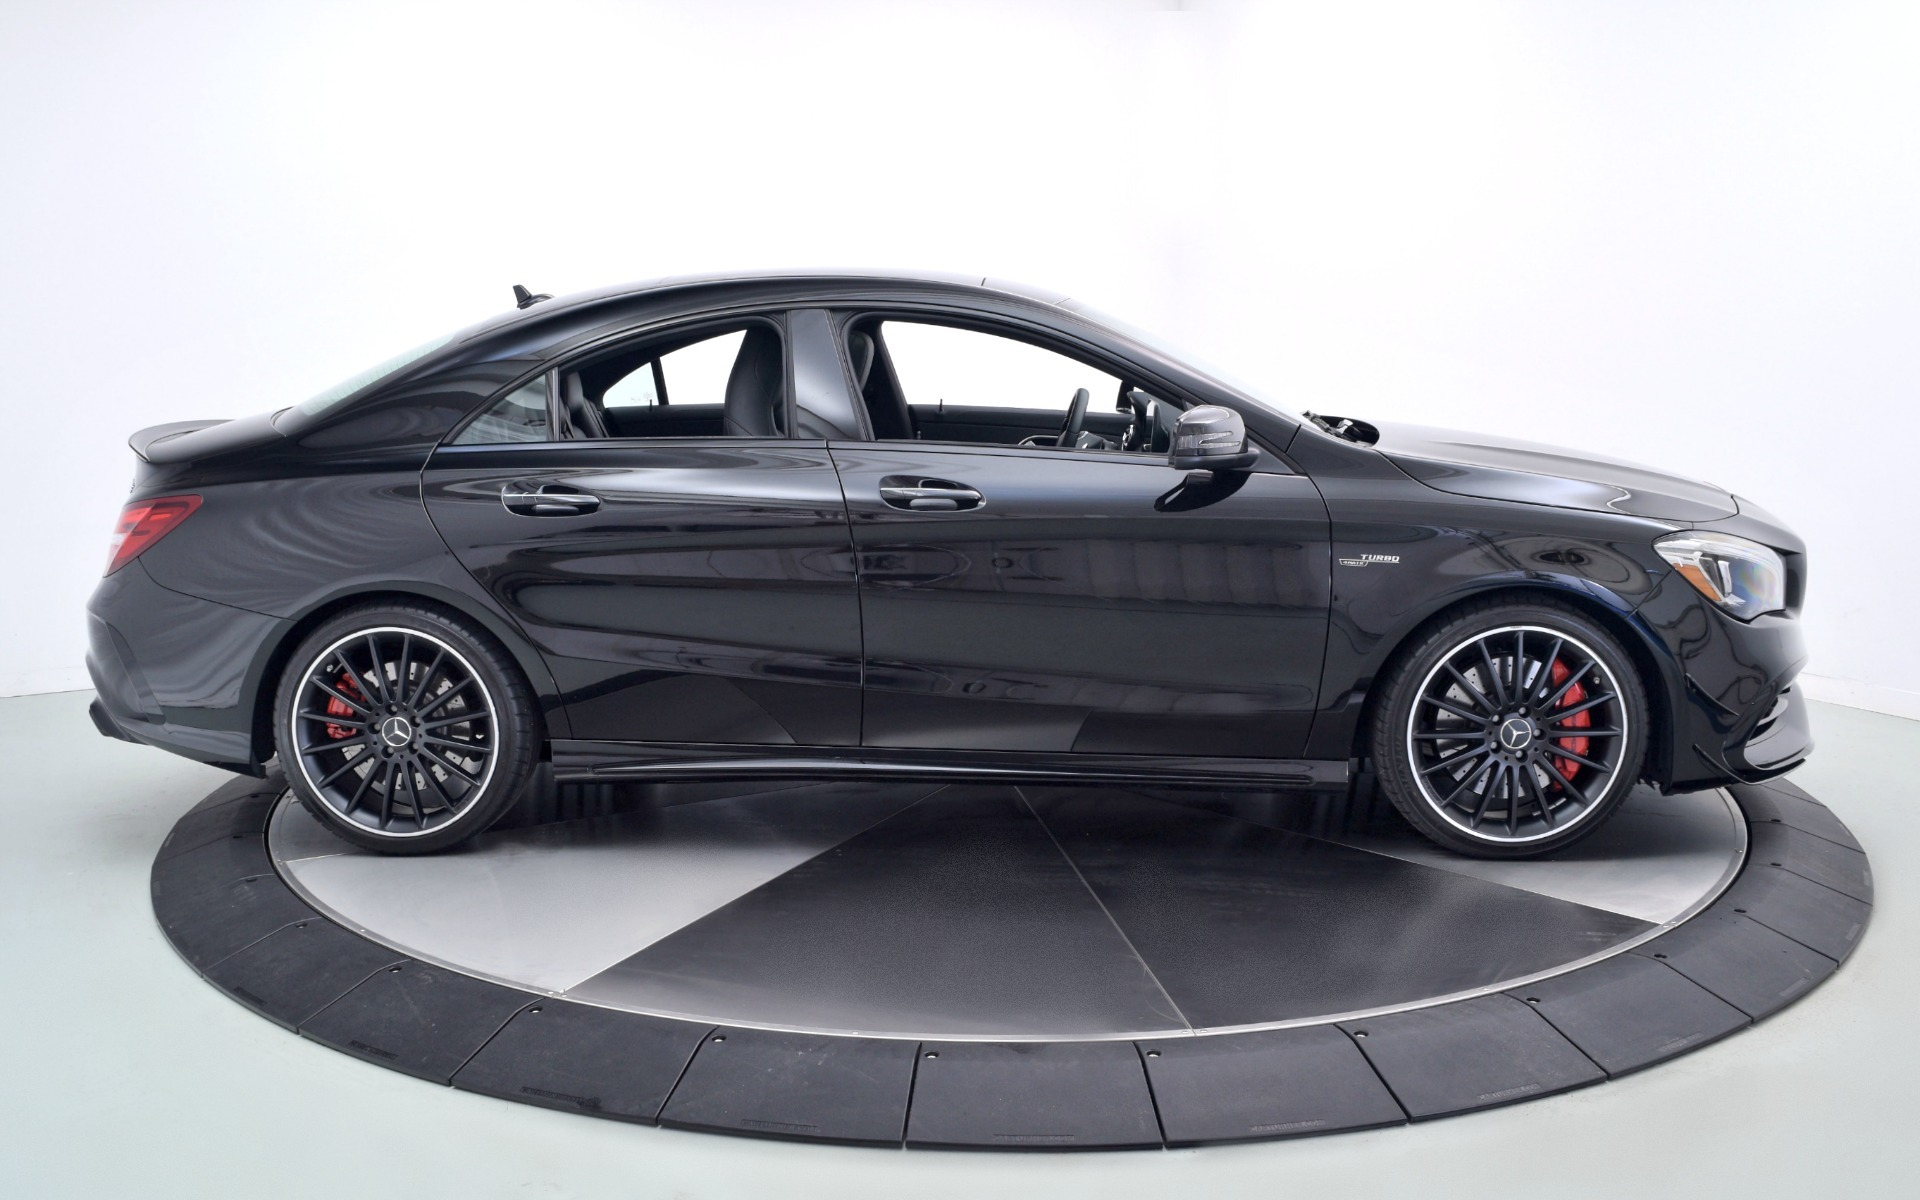 2018 mercedes benz cla 45 amg amg cla 45 for sale in for Mercedes benz cla 2018 price